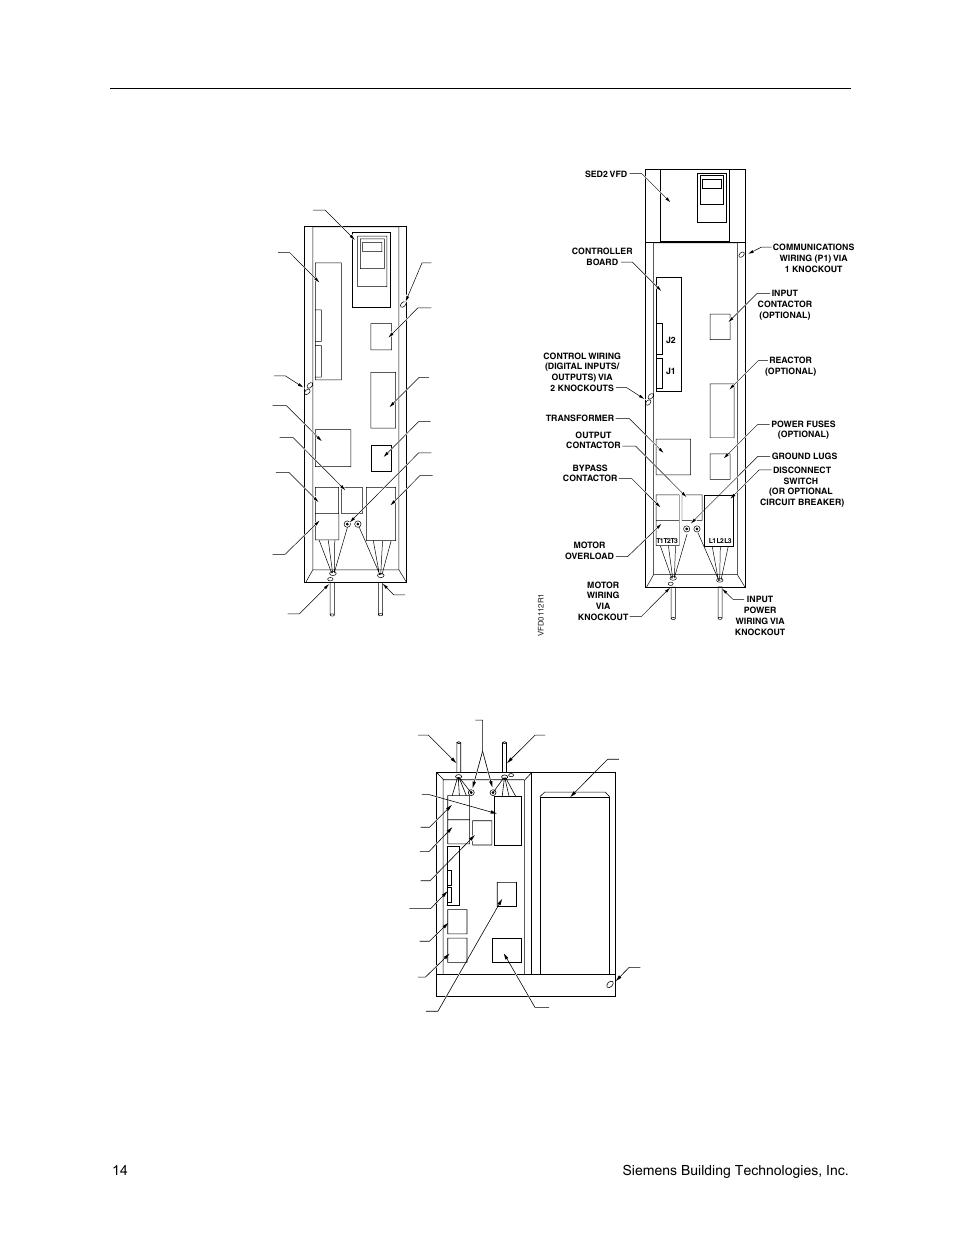 14 sie building technologies, inc | Sie SED2 VFD ... Vfd Wiring Outputs Diagram on